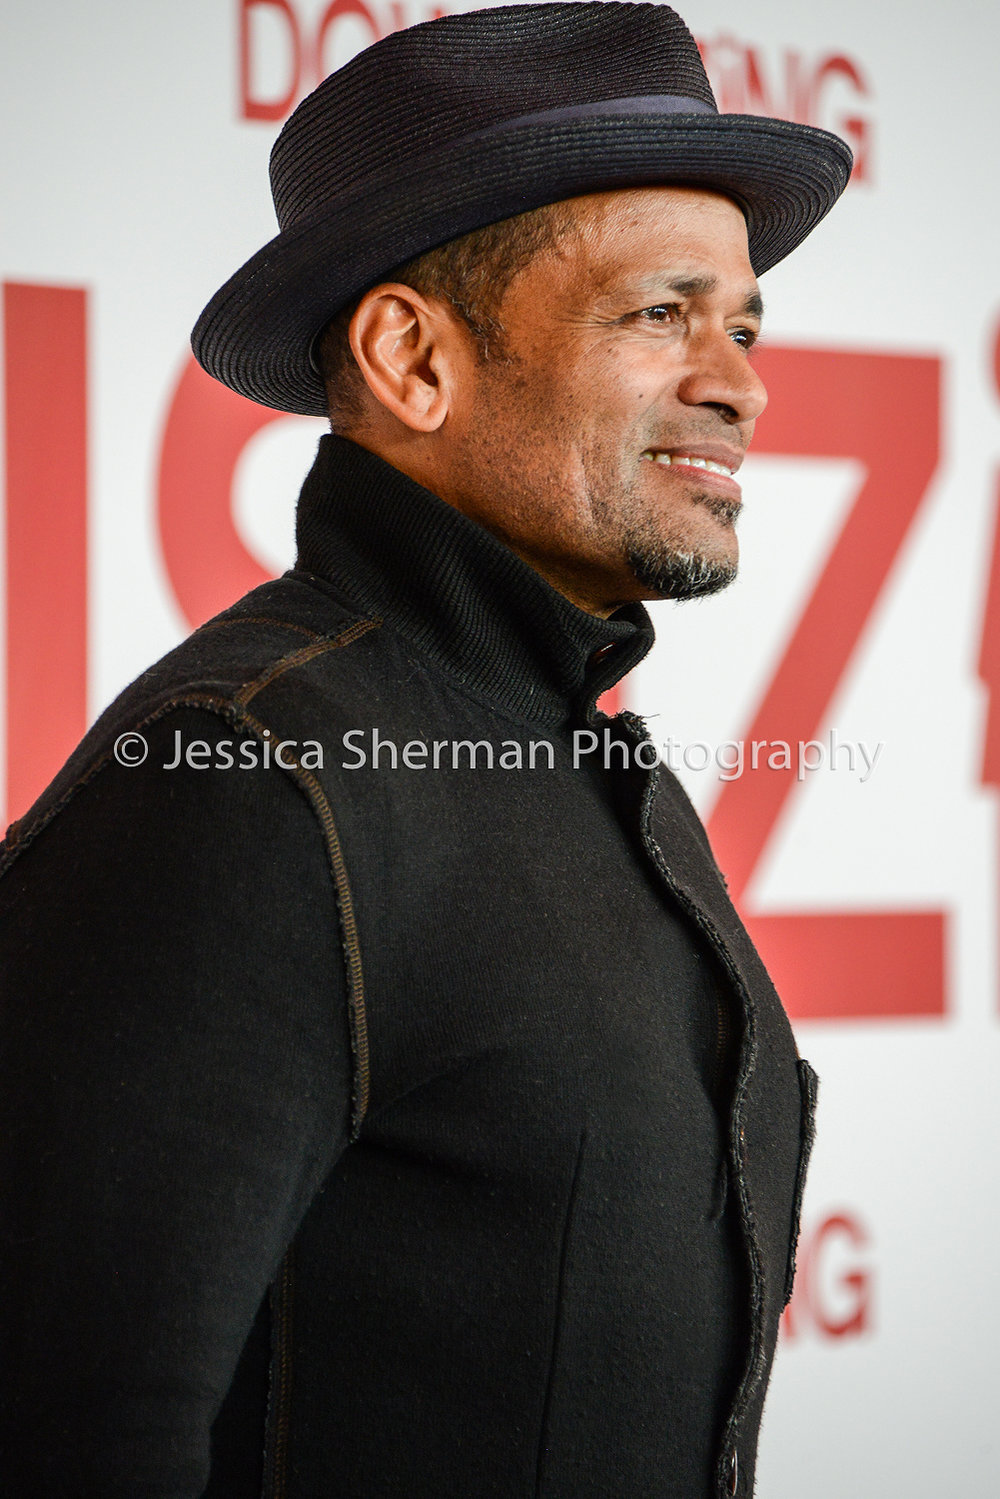 Mario-Van-Peebles_JessicaSherman5 (1 of 1).jpg